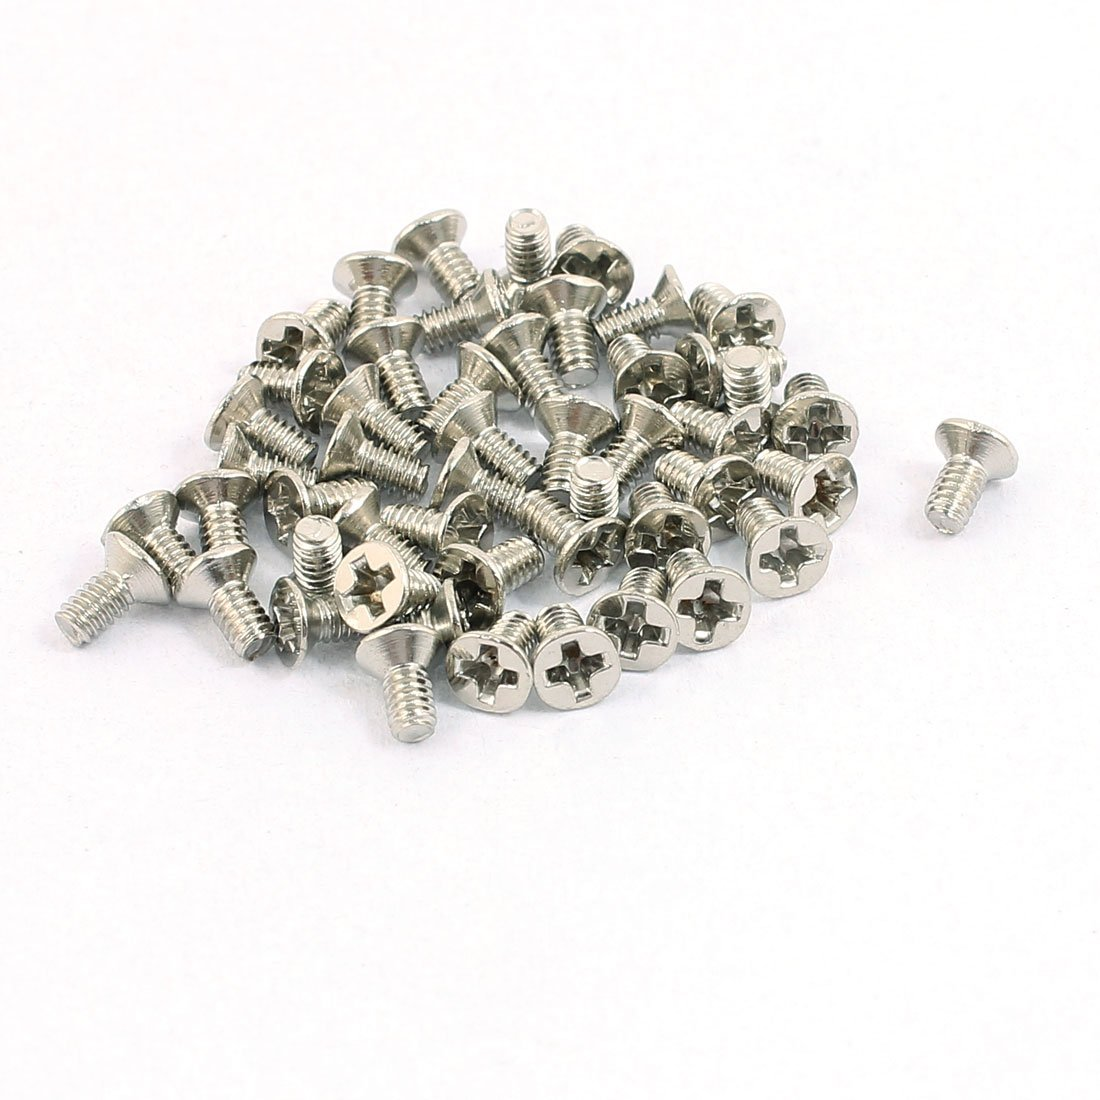 uxcell 50pcs M2x4mm Stainless Steel Countersunk Flat Head Phillips Machine Screws Bolts a16060200ux0484